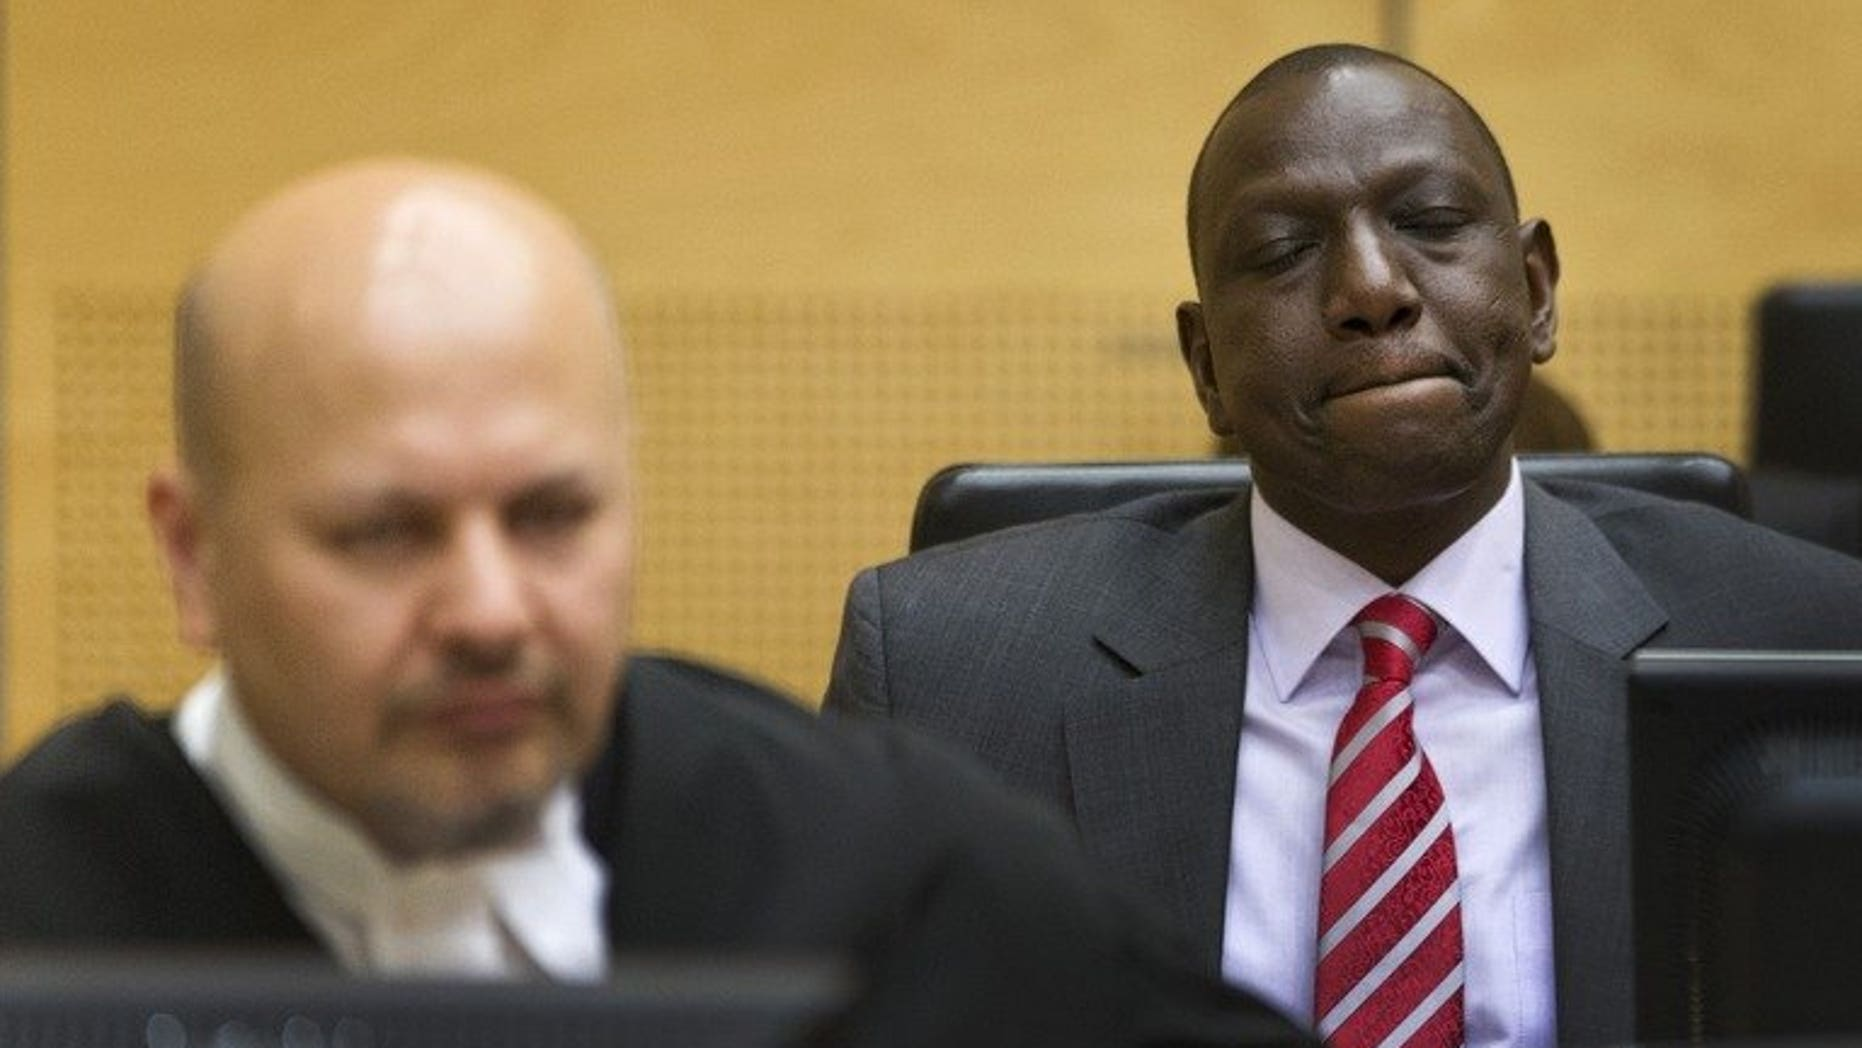 """Kenya's Deputy President William Ruto (right) reacts as he sits in the courtroom before their trial at the International Criminal Court (ICC) in The Hague on September 10, 2013. Kenyatta has been """"distressed"""" by the start of an international trial of his deputy for crimes against humanity,"""